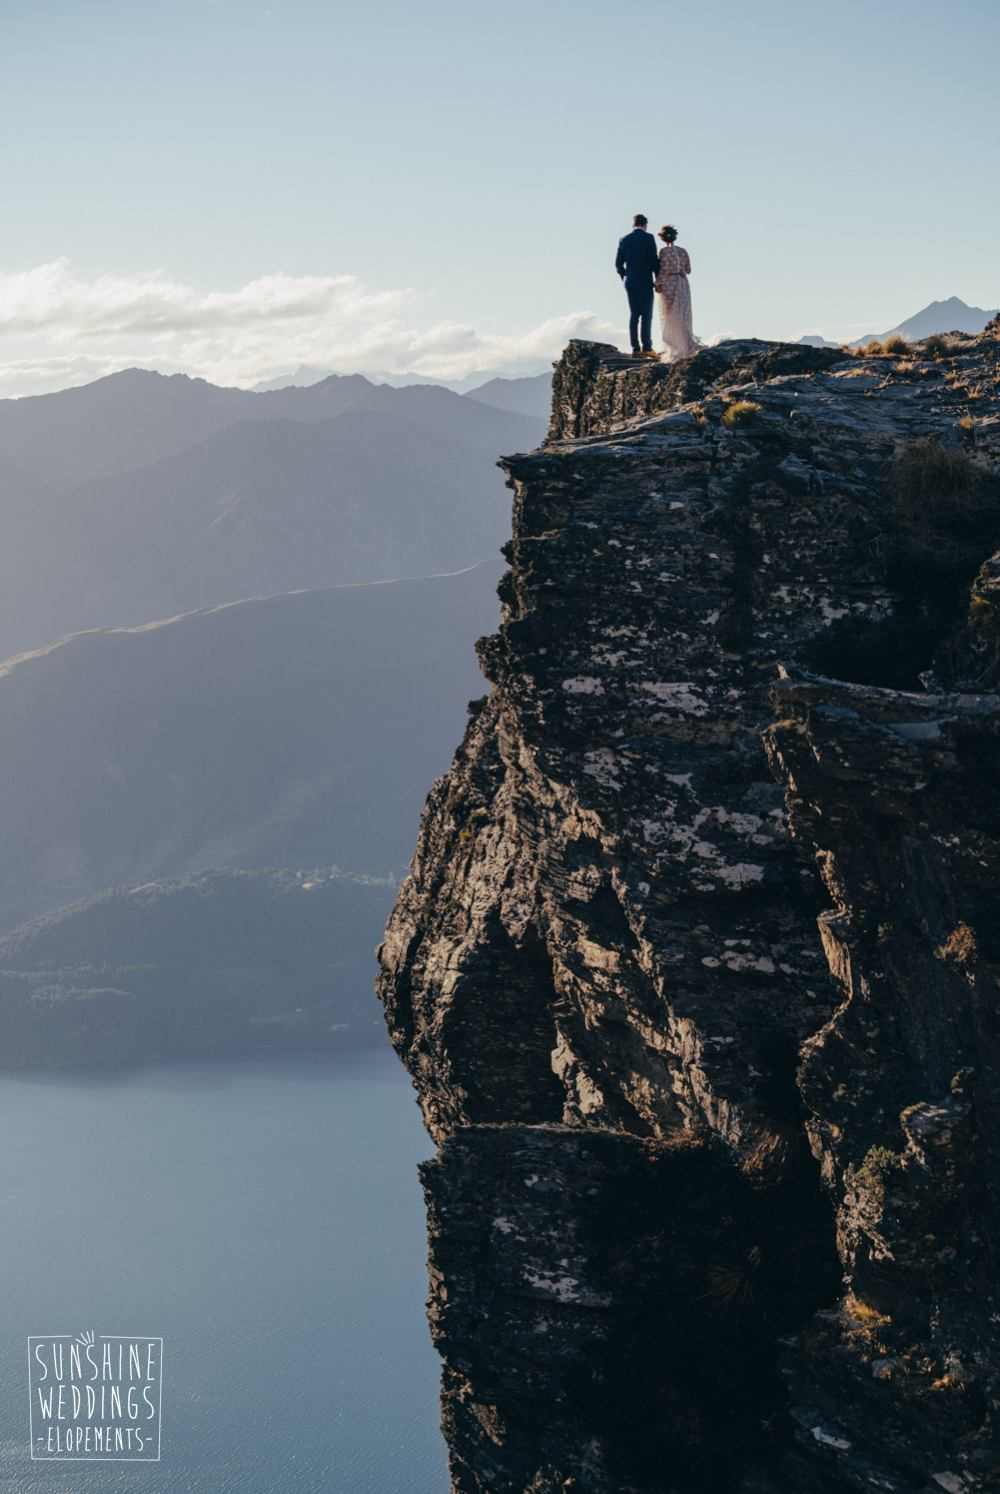 The Ledge Queenstown wedding packages